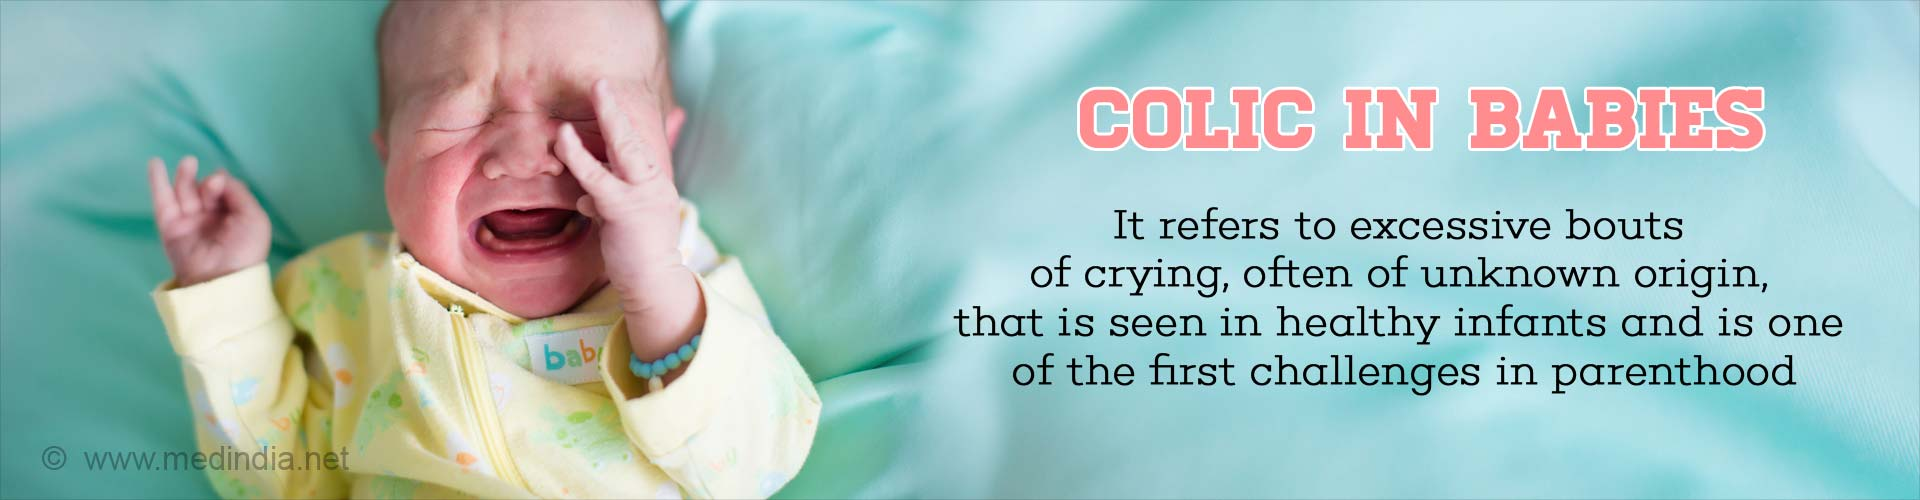 Colic in Babies - it refers to excessive bouts of crying, often of unknown origin, that is seen in healthy infants and is one of the first challenges in parenthood